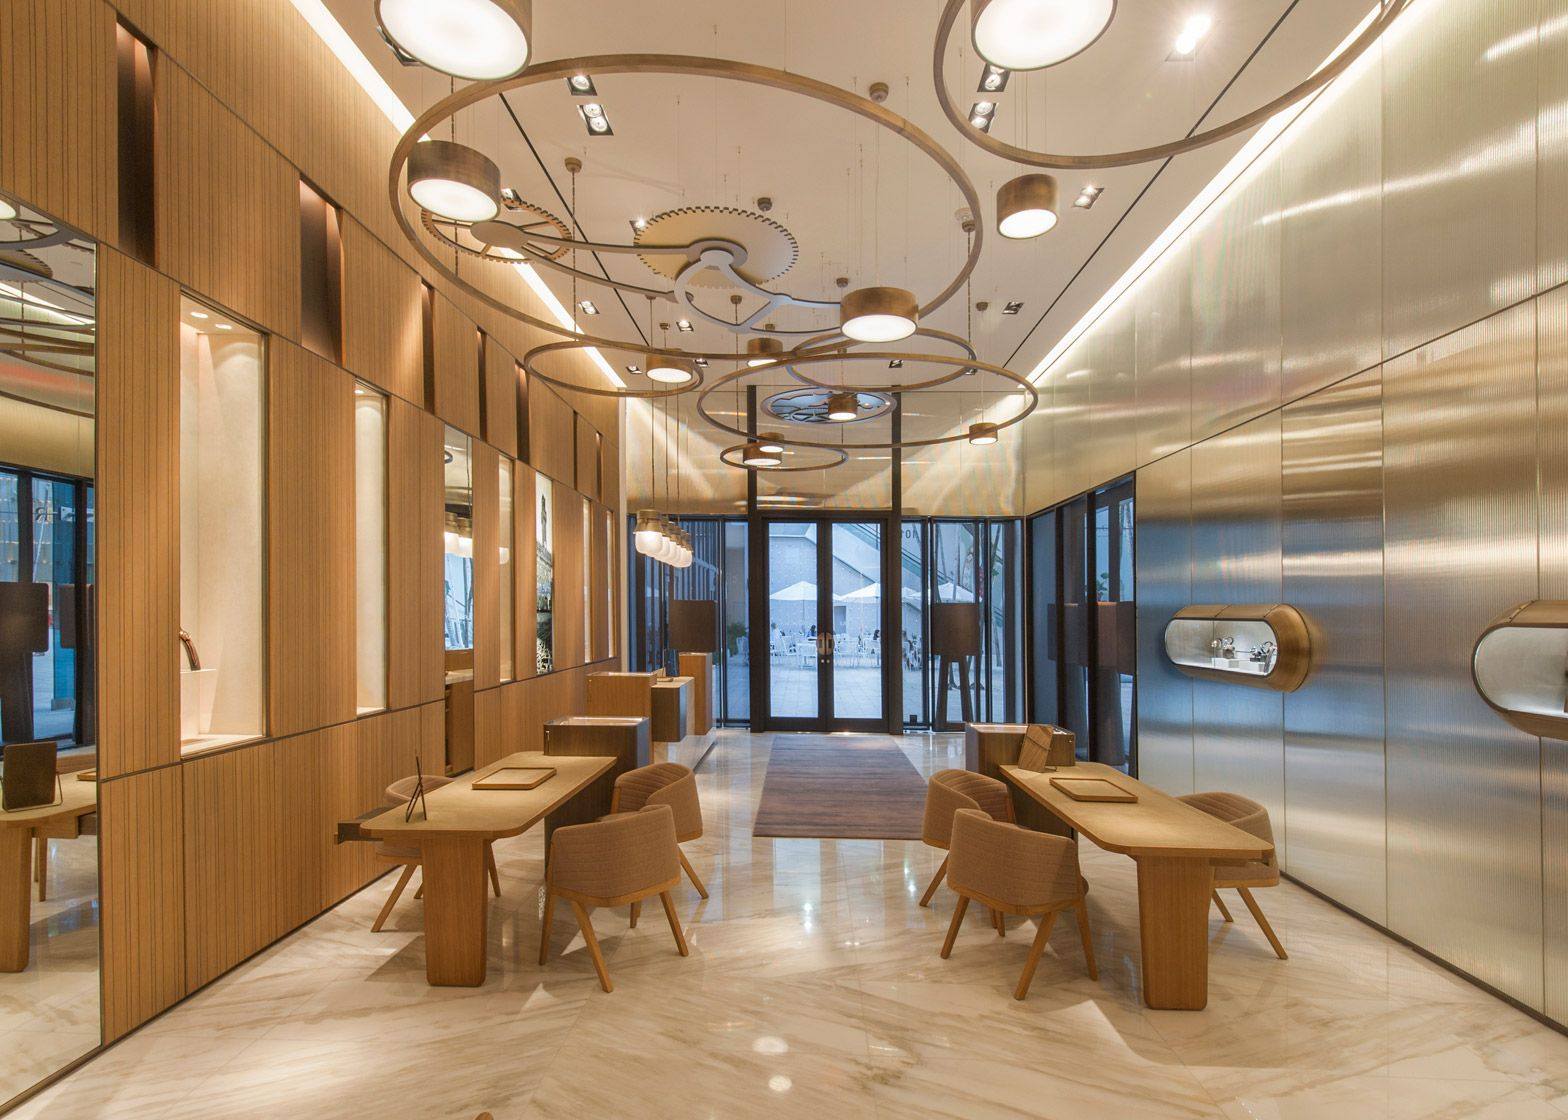 Patricia Urquiolas Miami Panerai Shop Was Inspired By Watches Top Interior DesignersRetail